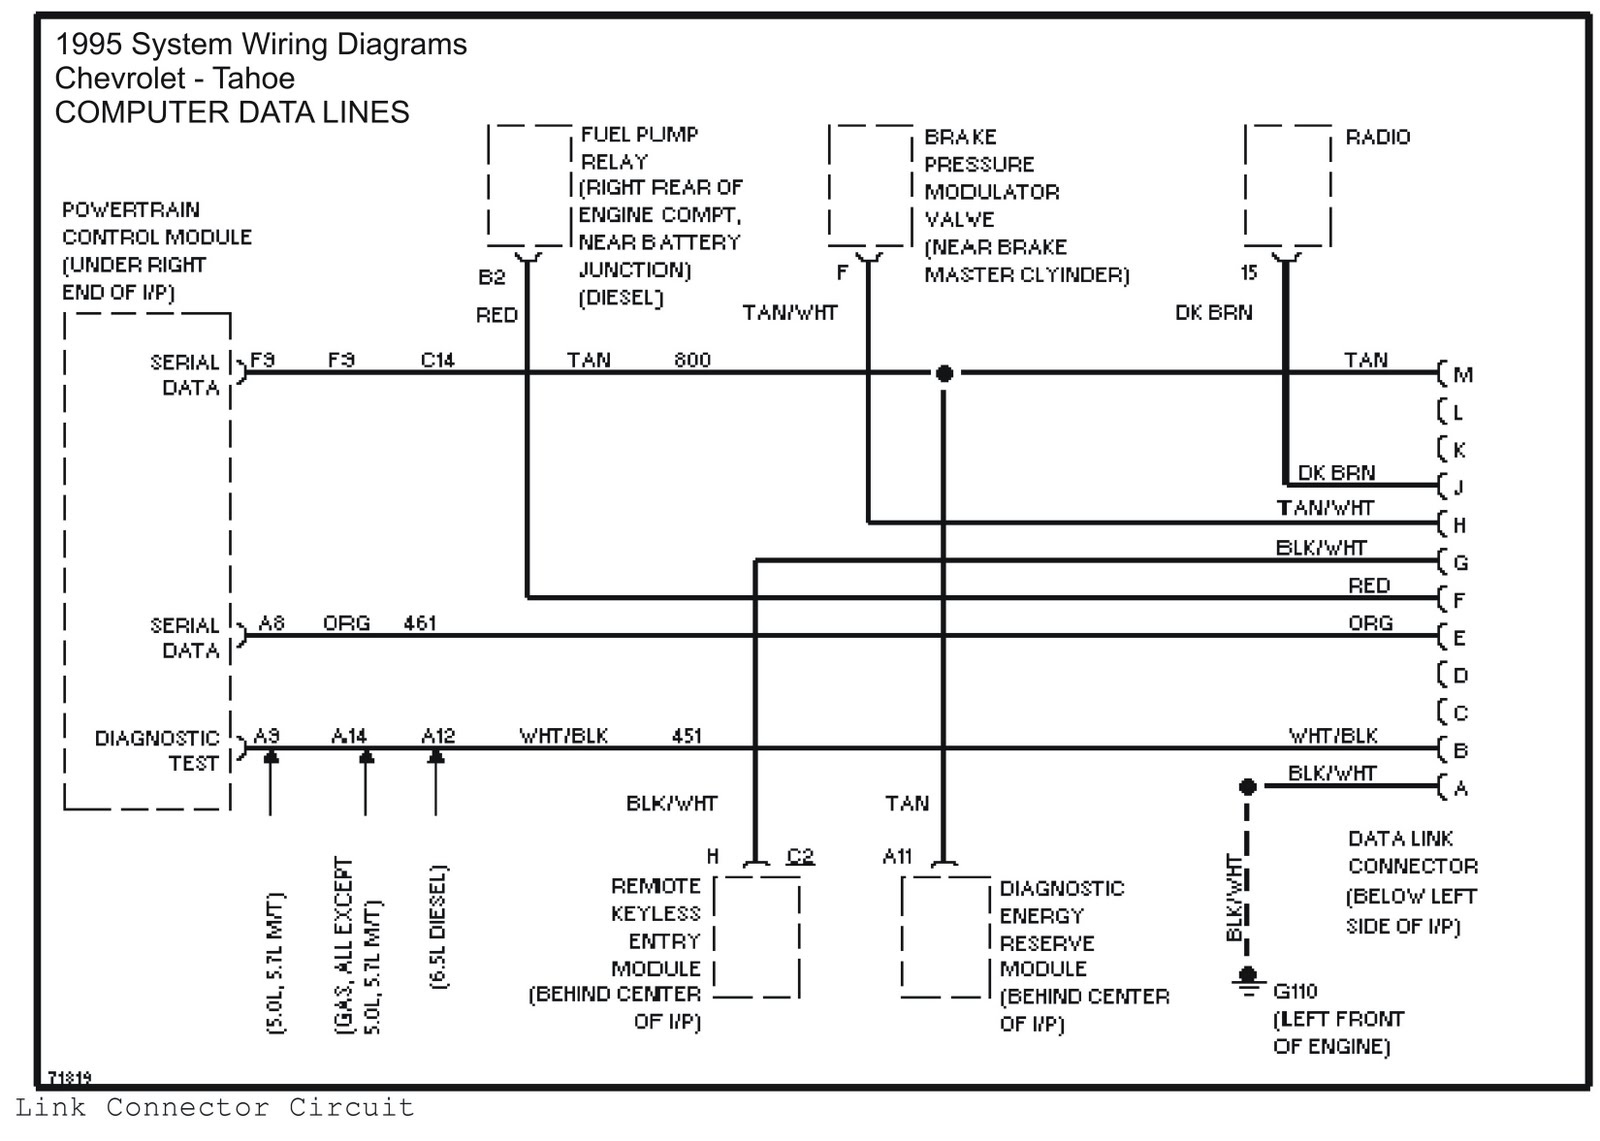 Volvo V70 Radio Wiring Diagram 30 Images Fuse Box 0004 97 Chevy Express 28 09